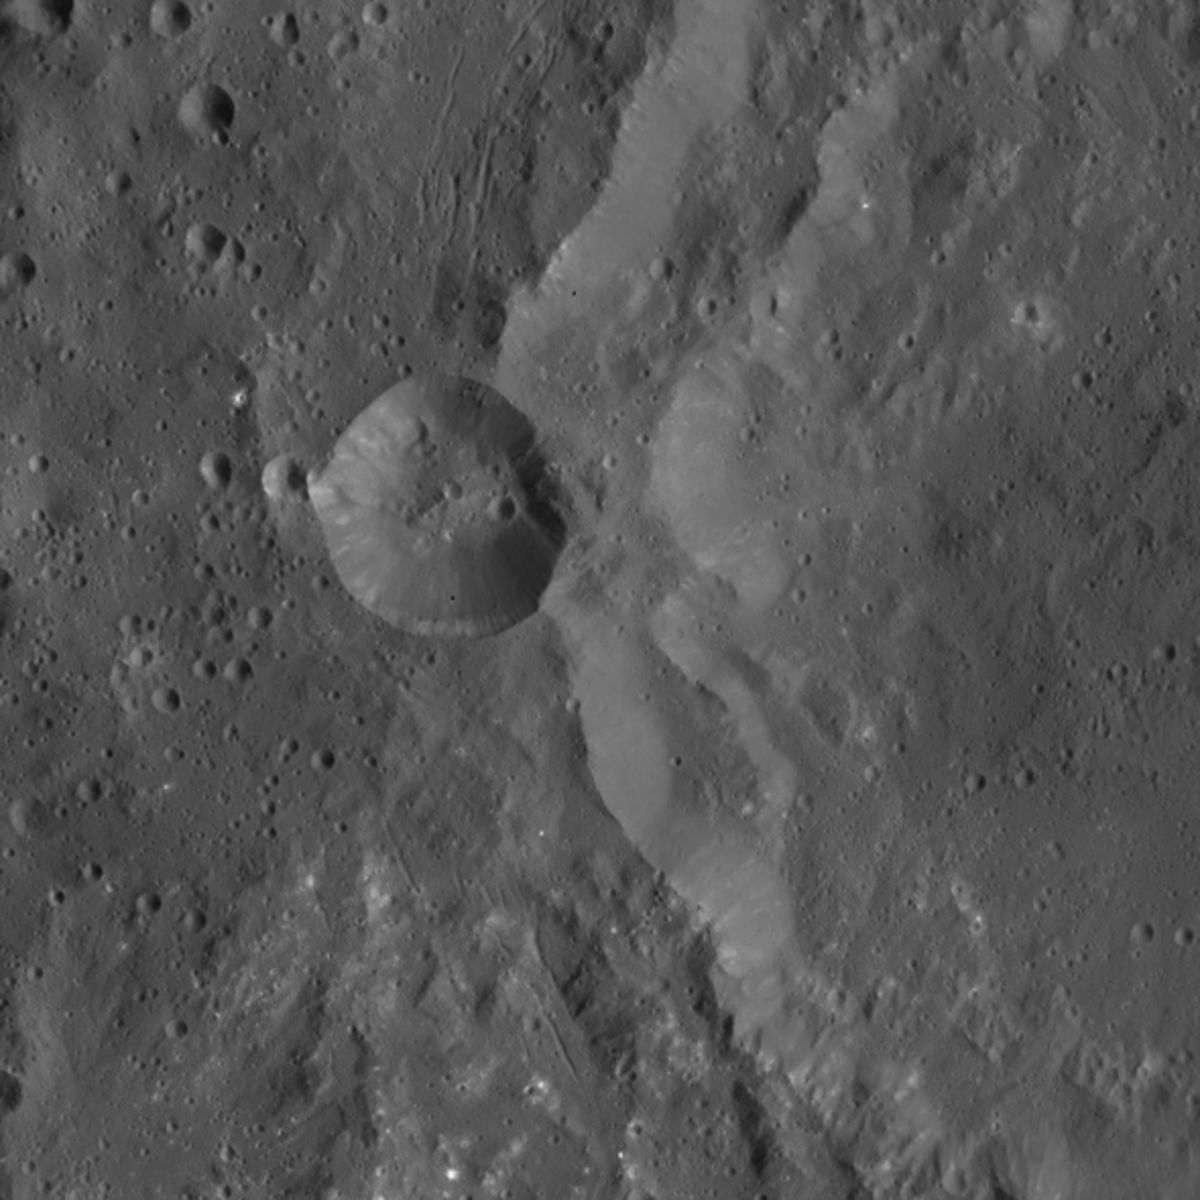 dawn_ceres_cracks_whitespots_590_0.jpg